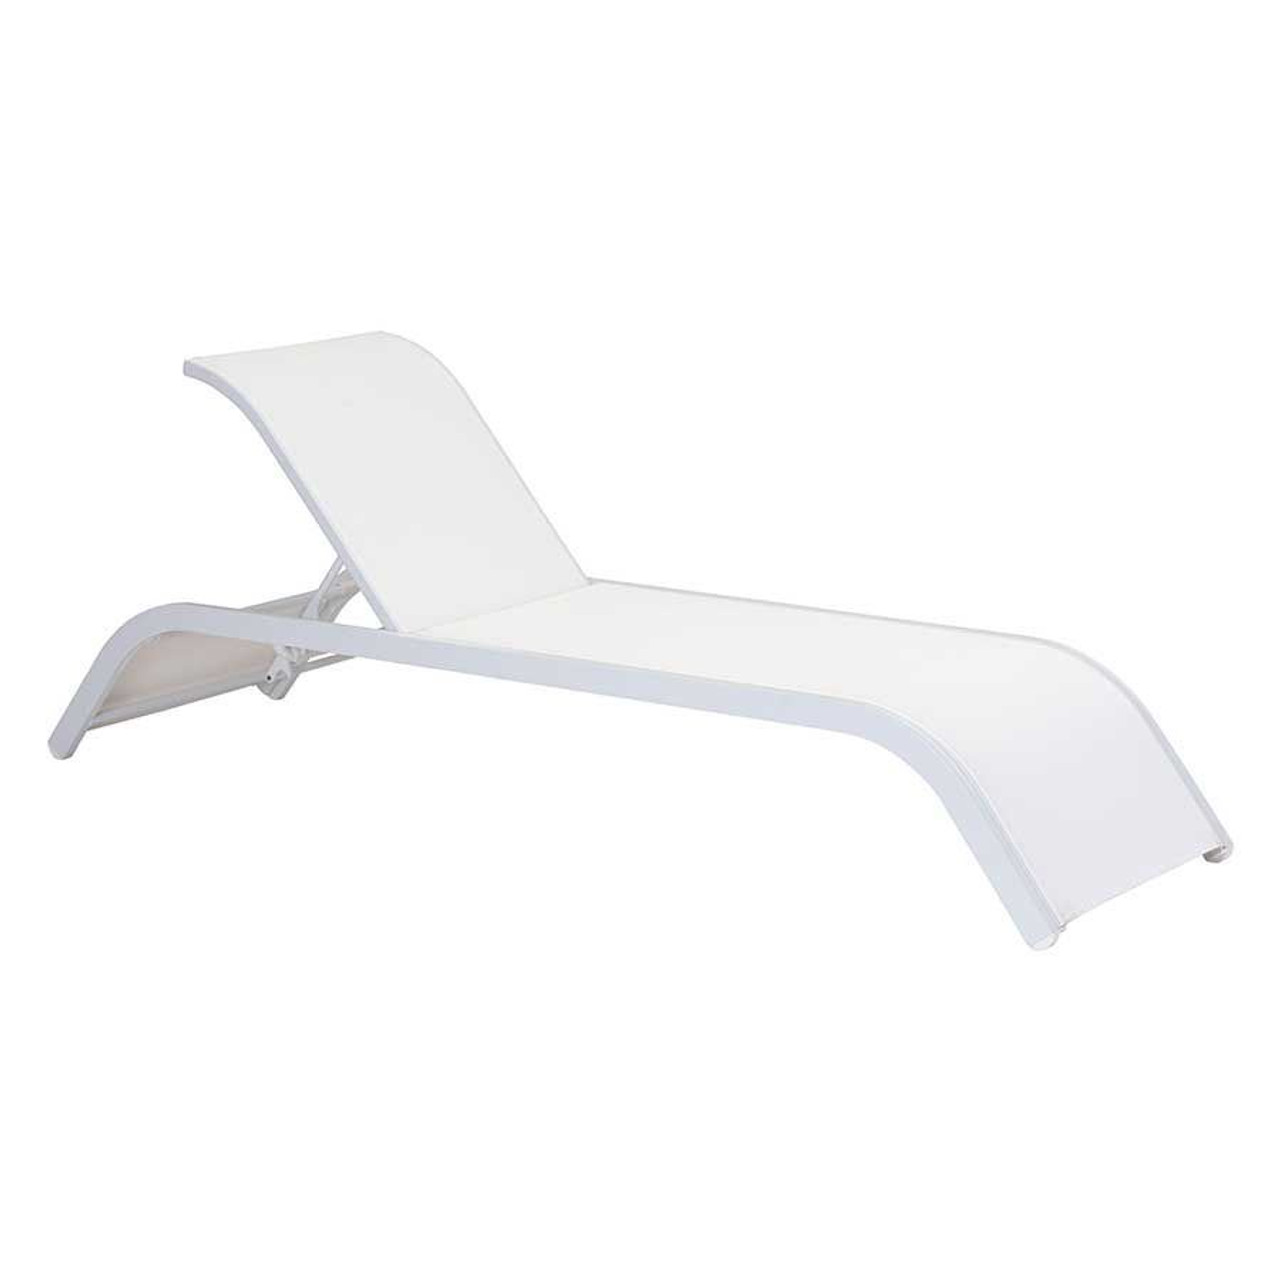 Sun Beach White Chaise Lounge Zin Home